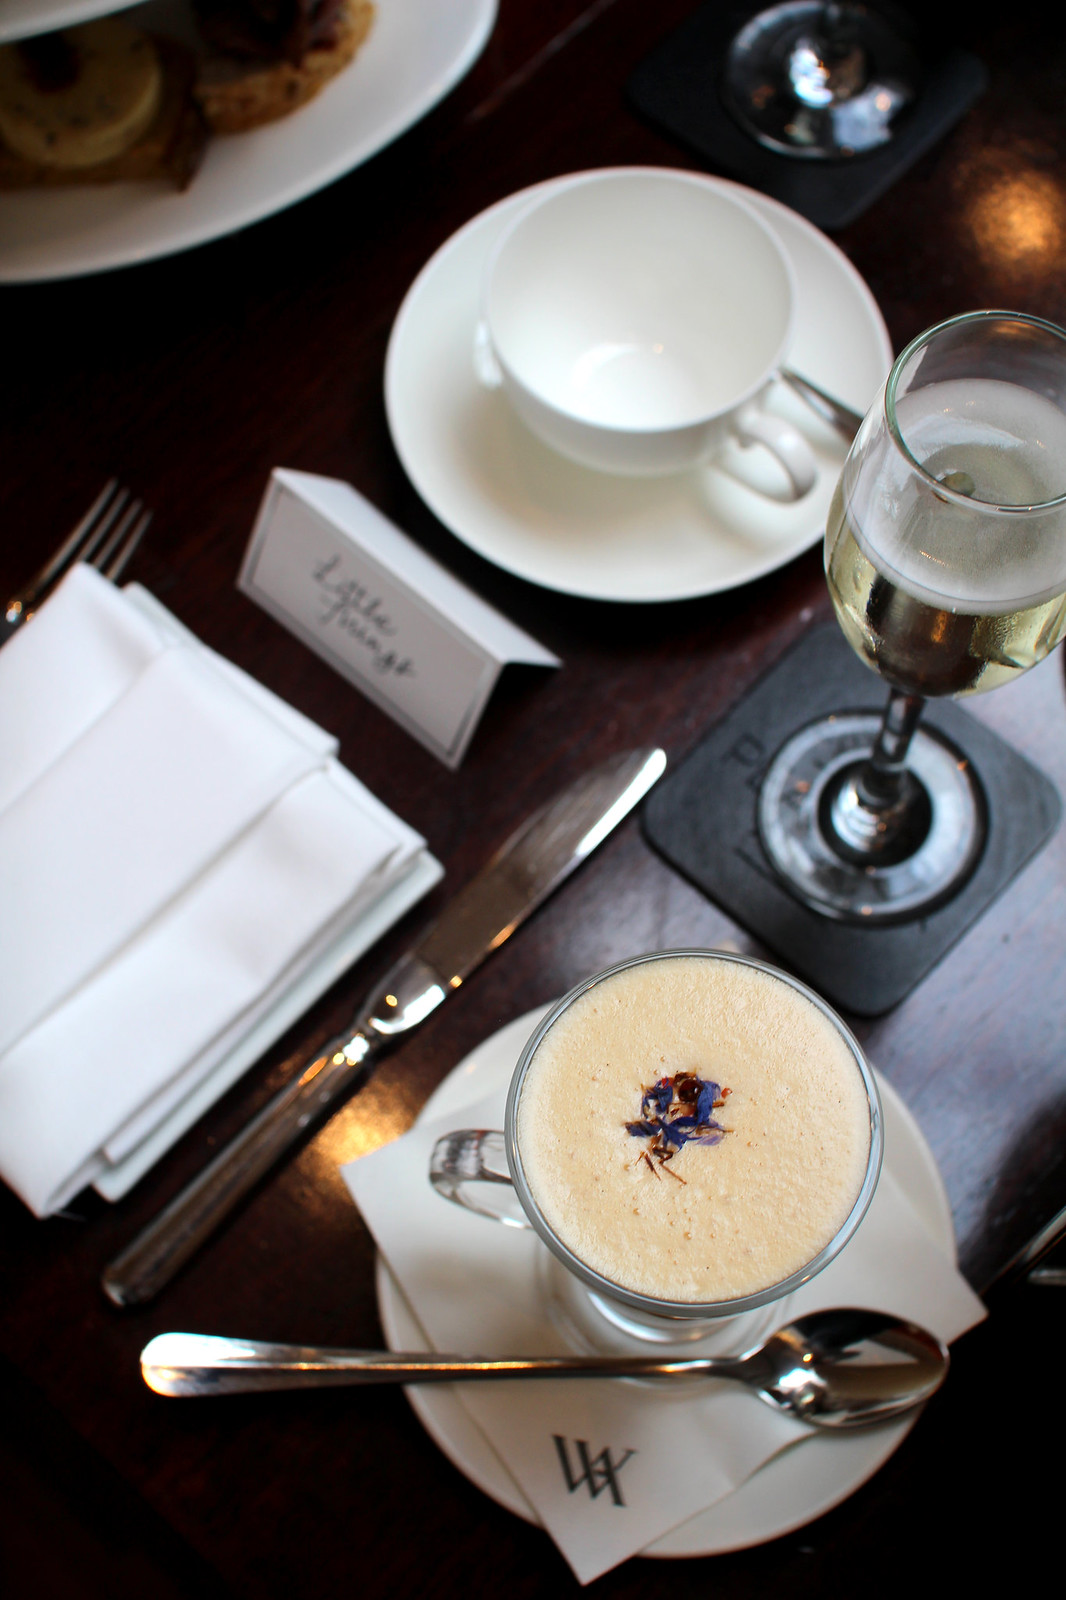 Waldorf Astoria Calton Hotel Peacock Room Afternoon Tea Summer 2017 Blogger Lifestyle Review Edinburgh UK